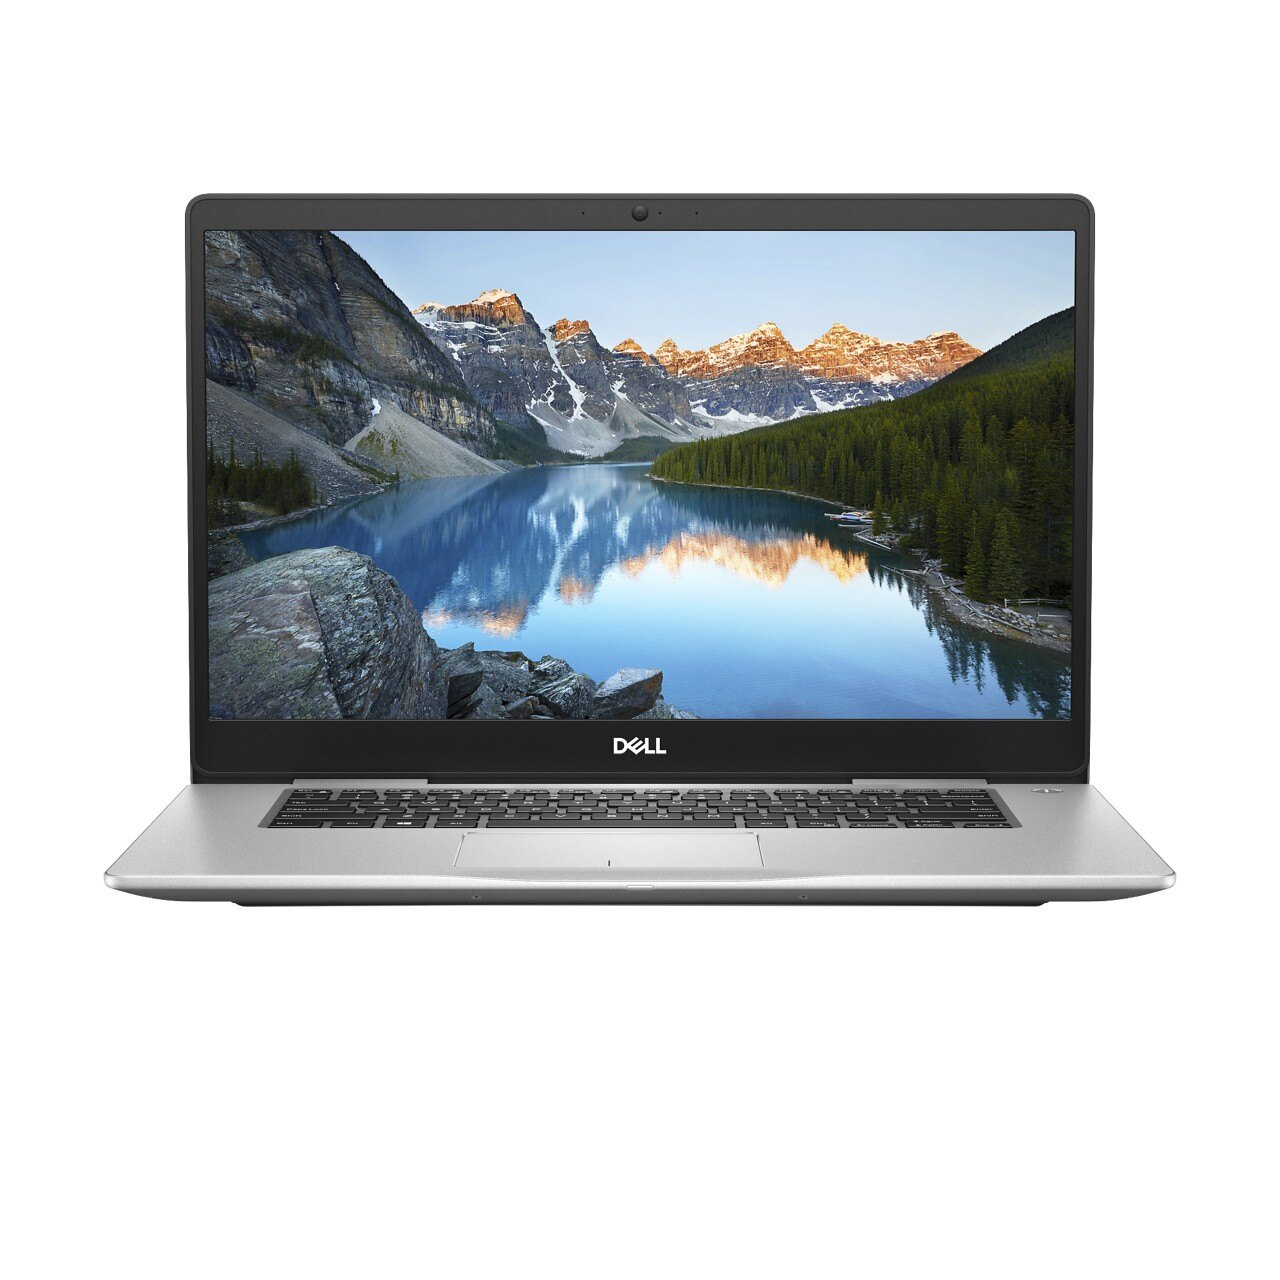 "Dell Inspiron 15 7000 15.6"" Laptop (Quad Core i5-8265U / 8GB / 256GB SSD)"